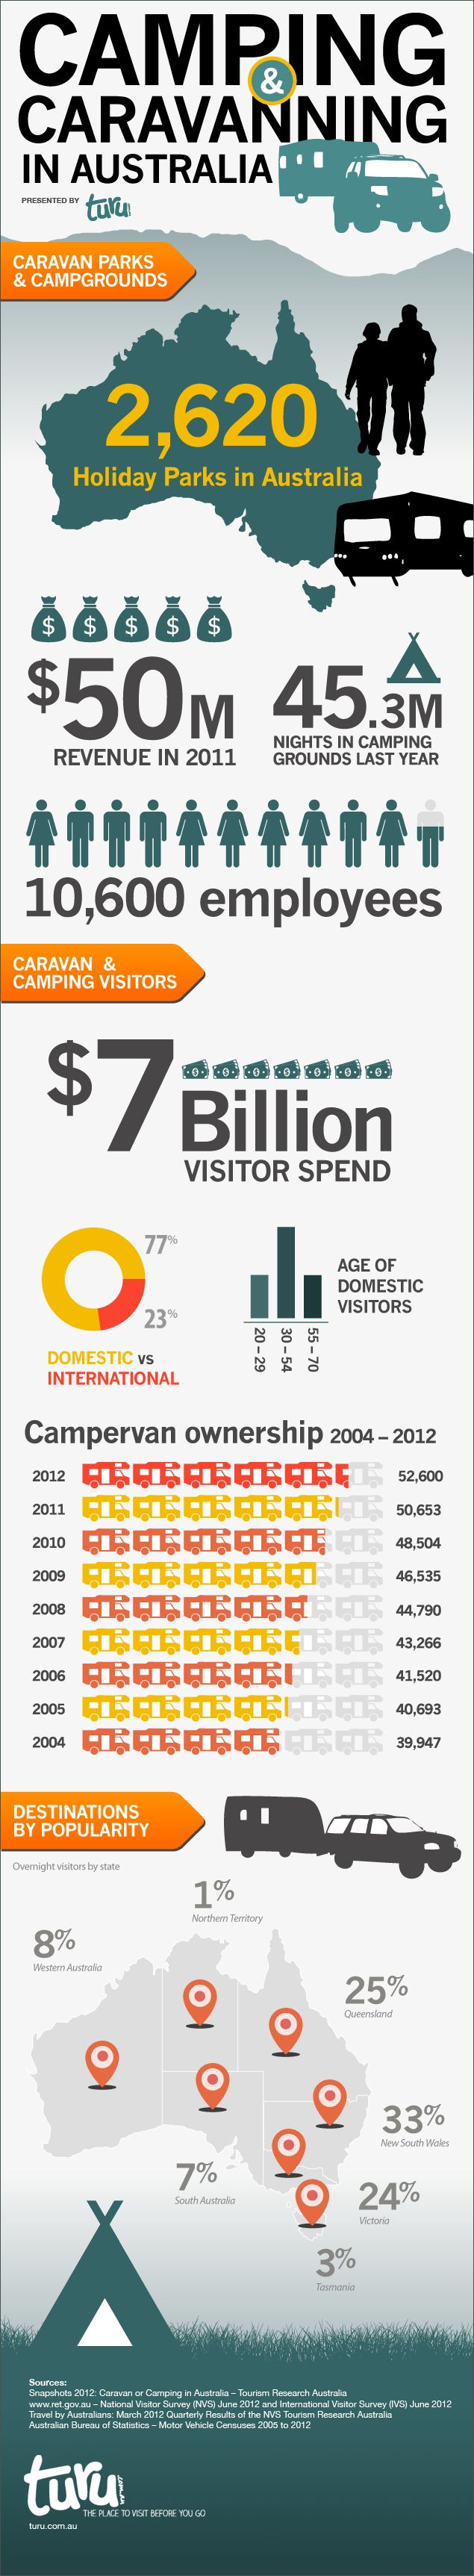 The info graphic offers an insight into the booming Australian industry of Caravanning